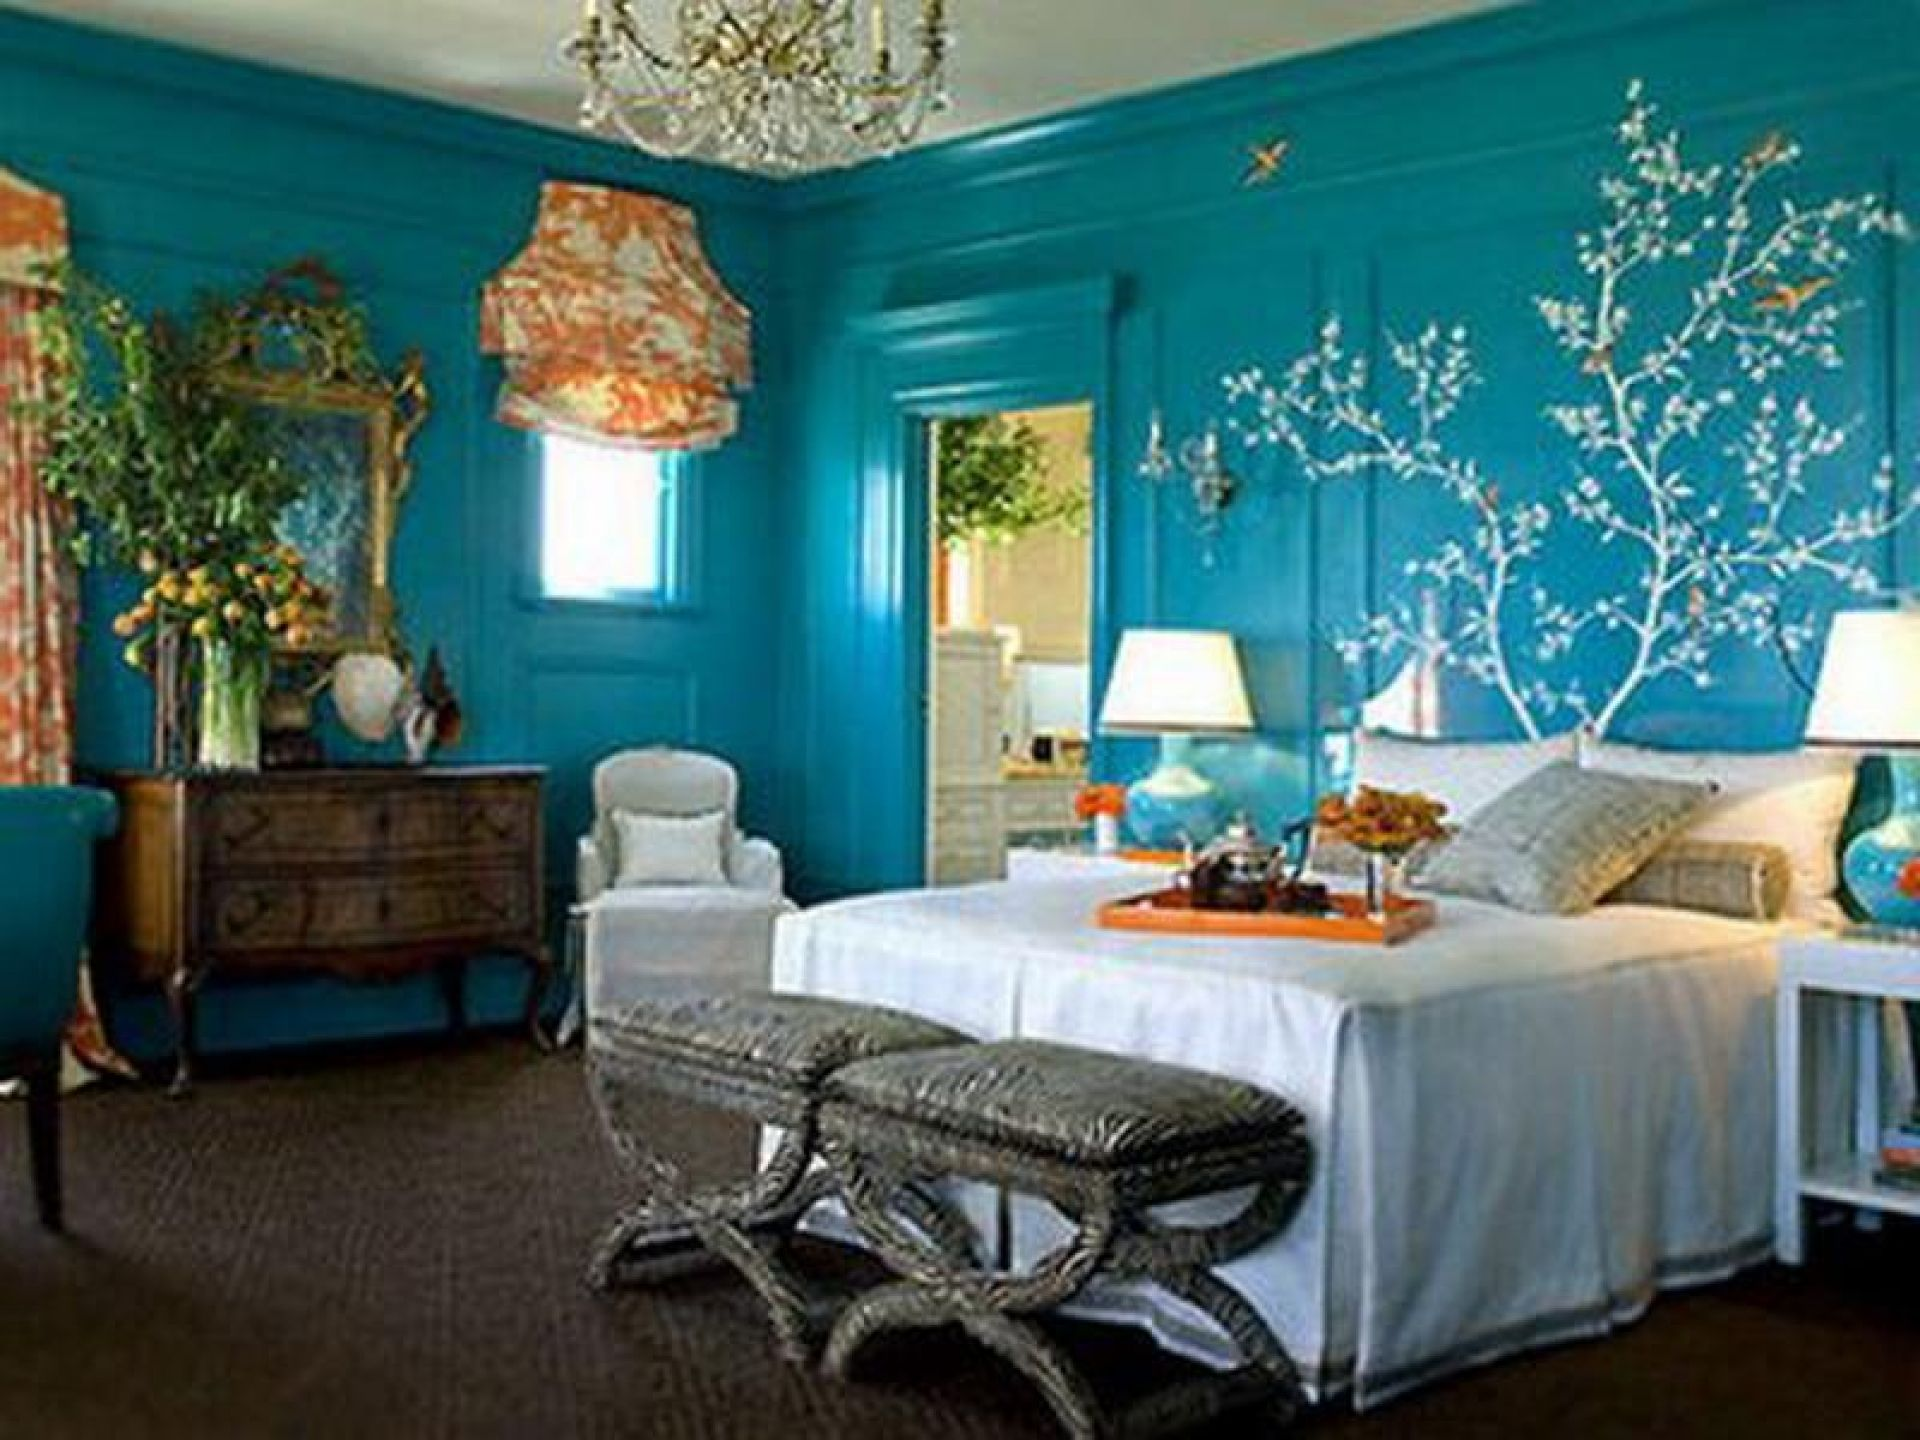 Bedroom Designs Young Adults i bedroom theme ideas for young adults bedroom ideas for young